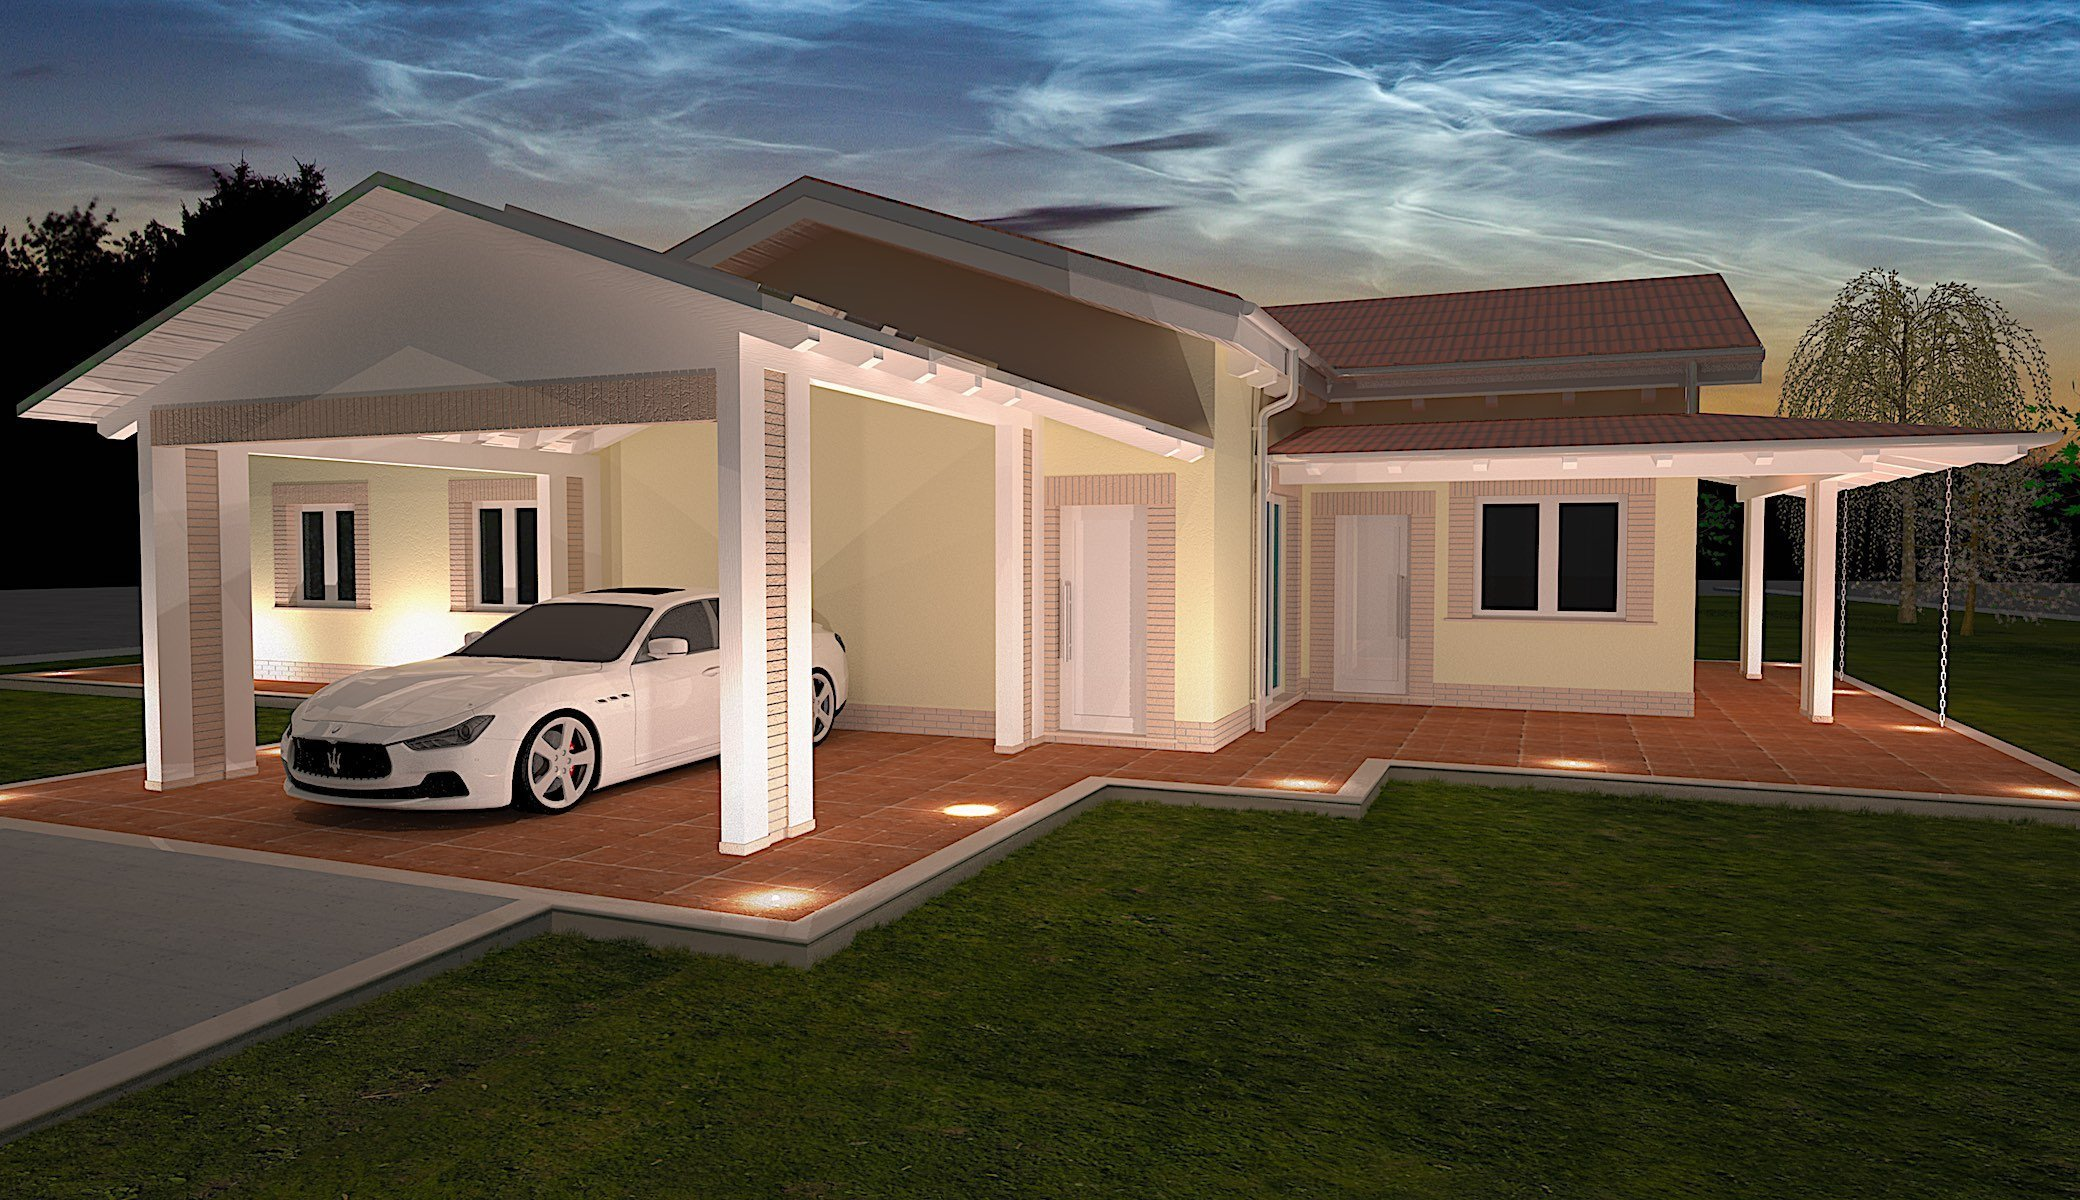 render01_View160000 copia